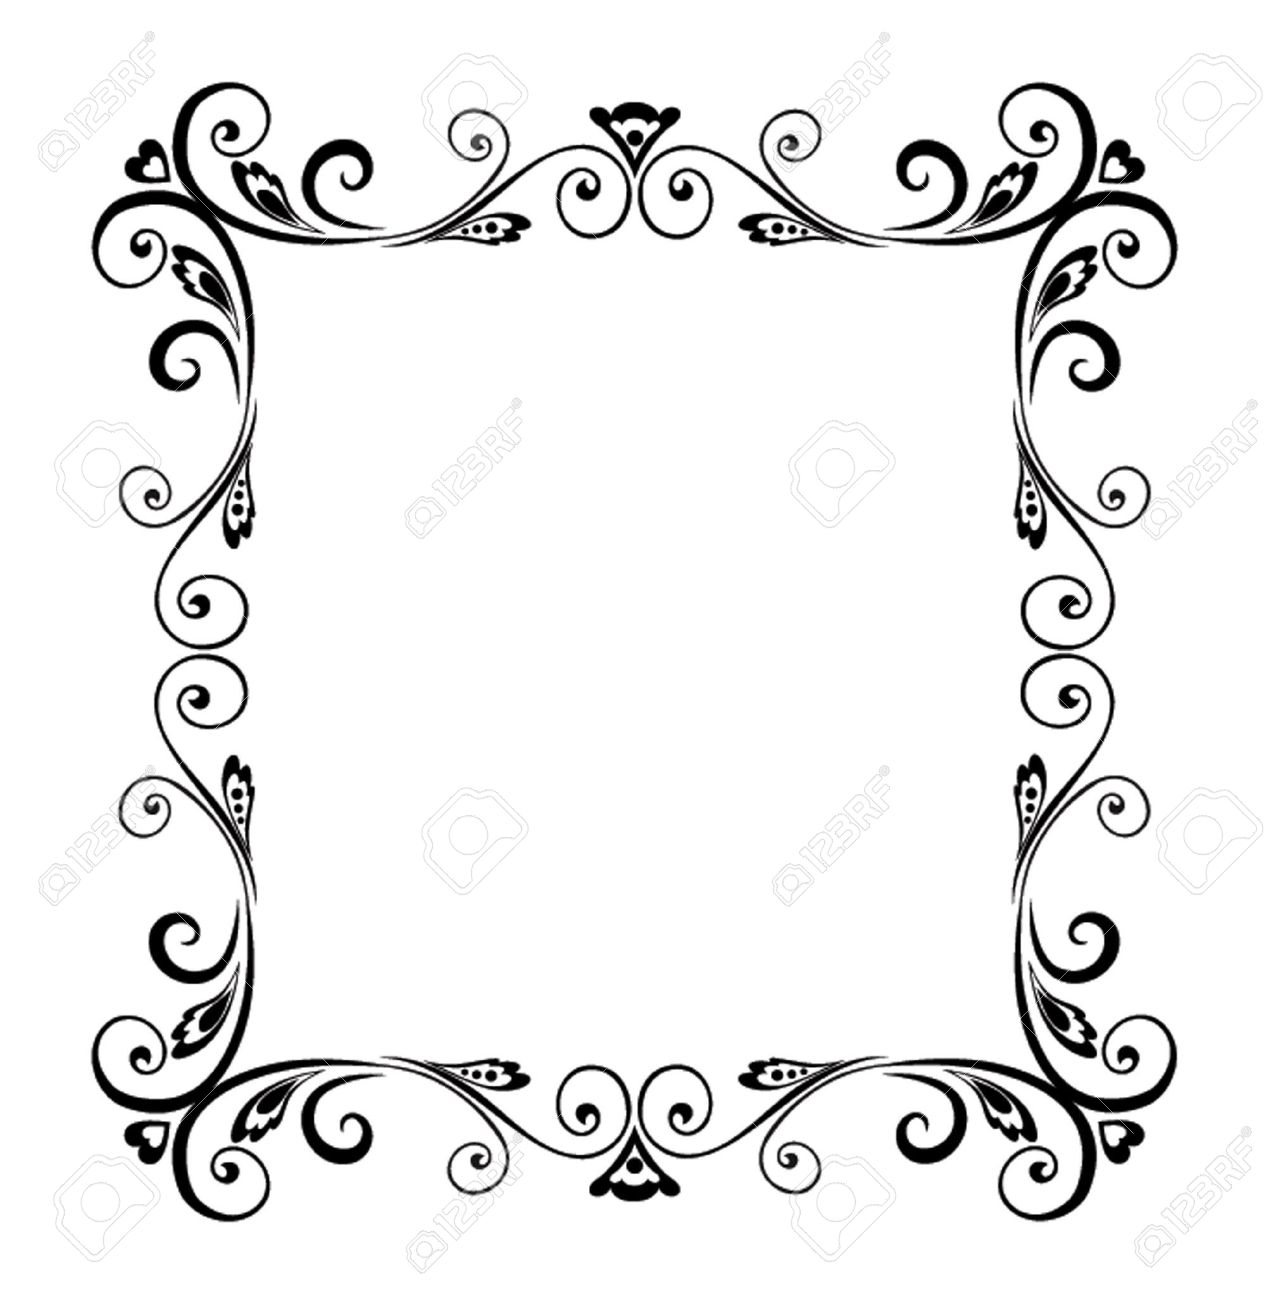 Decorative Frame Royalty Free Cliparts, Vectors, And Stock ...